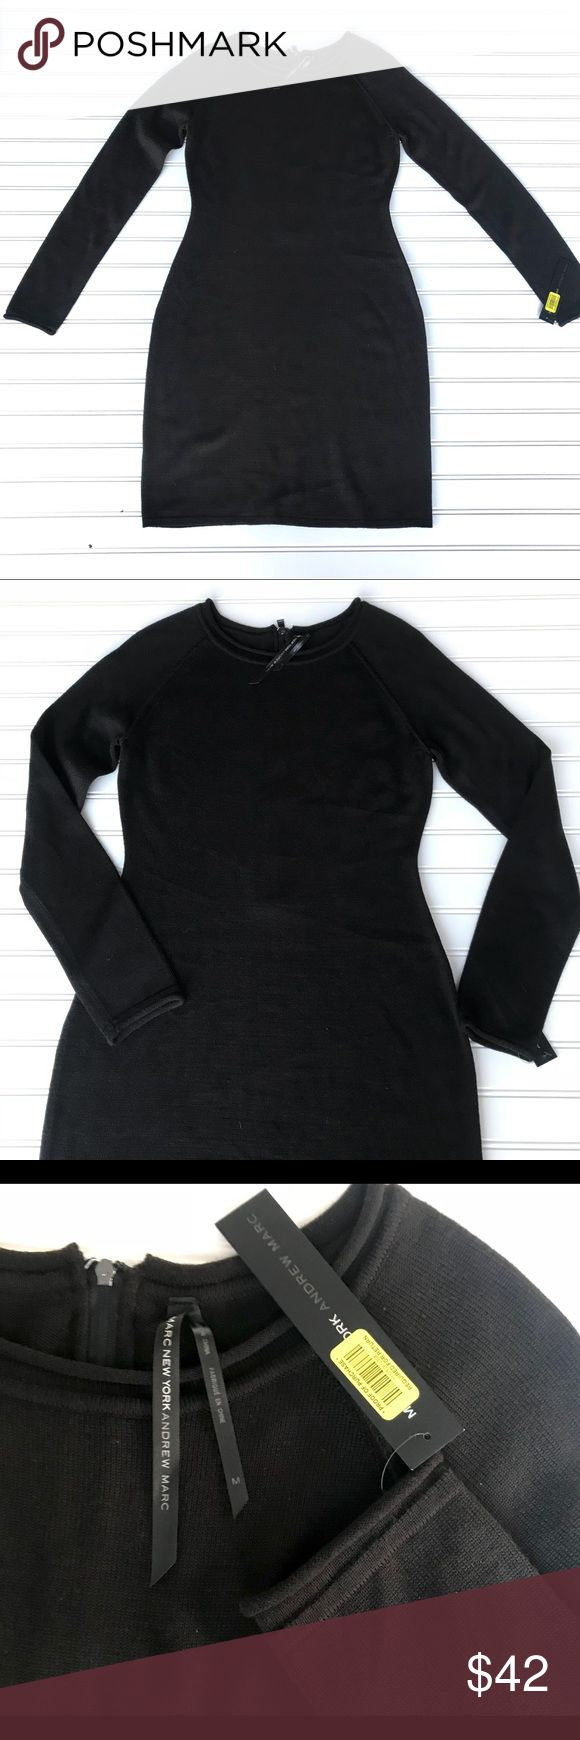 NWT Marc New York Andrew Marc Black Dress Size M NWT beautiful flatting black sweater dress by Marc New York Andrew Marc. Accent zipper on back. Scoop neck. 100% Acrylic  Size M Check out my other listing for bundle deals! Marc New York by Andrew Marc Dresses Long Sleeve